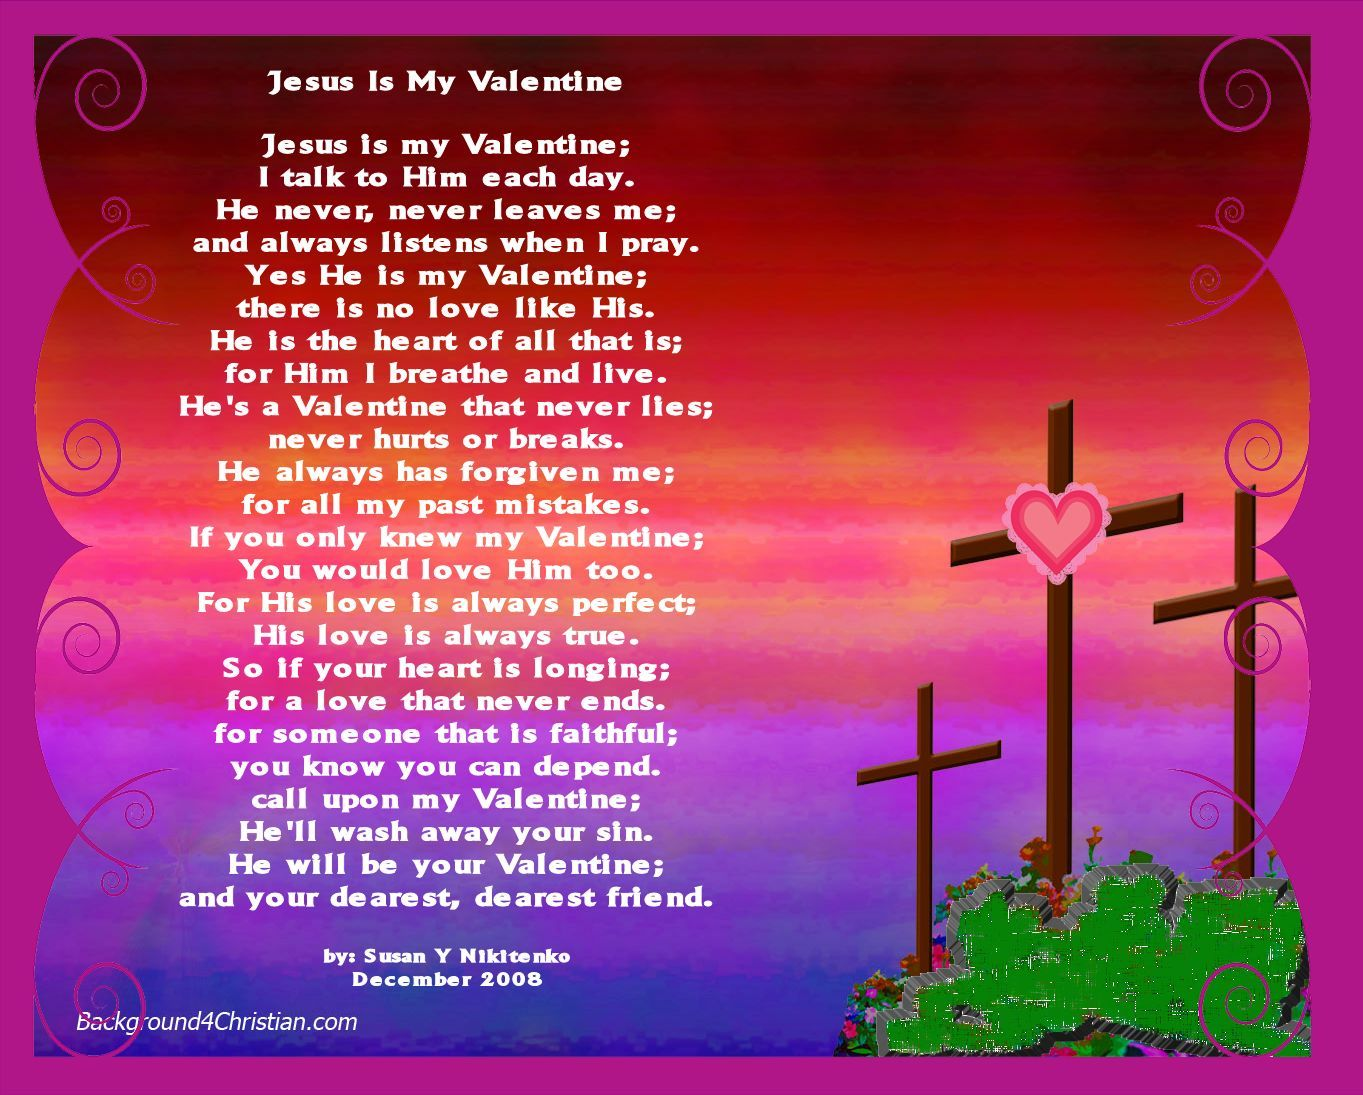 Cute Pics Of Poems Http Valentinesdayclipart Com Homemade Valentine Shoe Box How To Make Valentine Christian Valentines Valentines Day Poems Valentines Poems